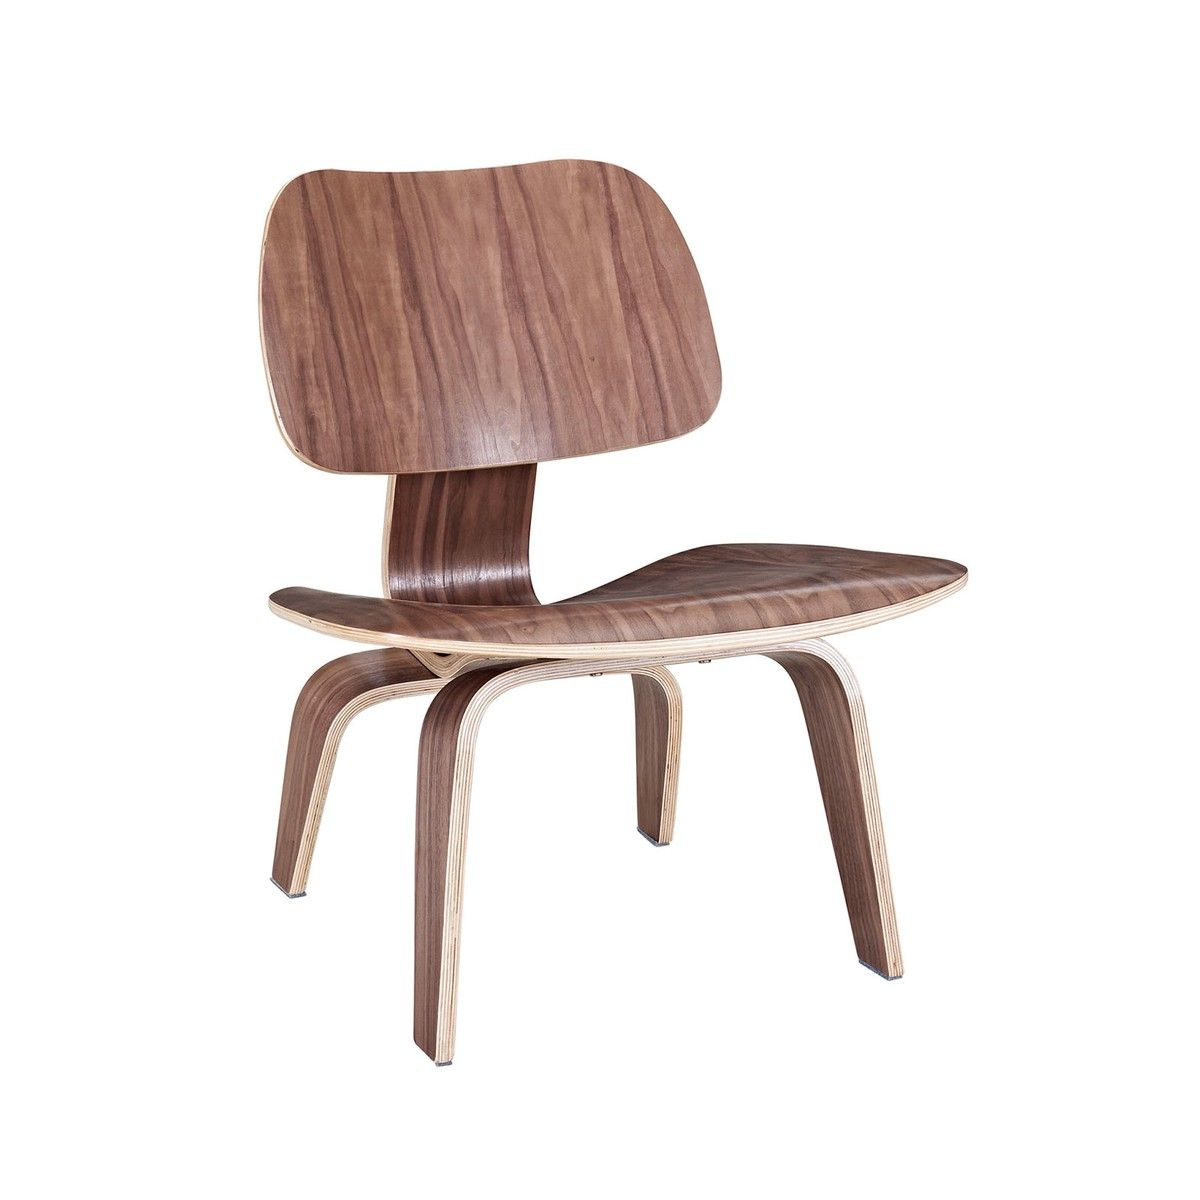 Graceful, Modern, And Ergonomic, This Chair Is A Great Way To Add  Additional. Plywood ChairEames ChairsLounge ...